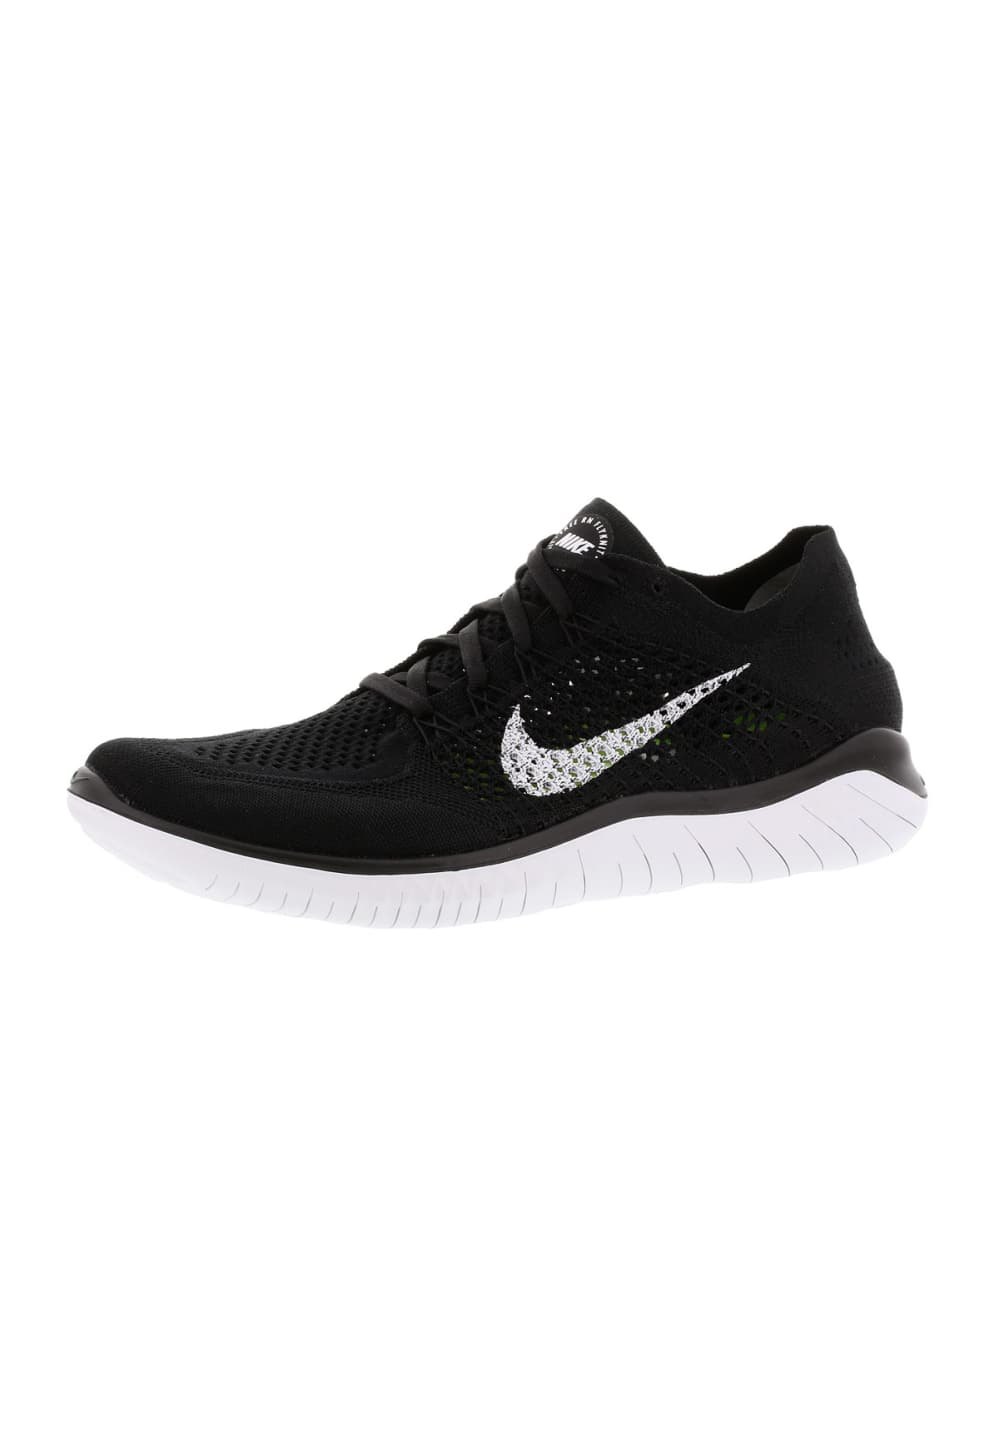 acheter en ligne 46da8 47cf0 Nike Free RN Flyknit 2018 - Running shoes for Men - Black